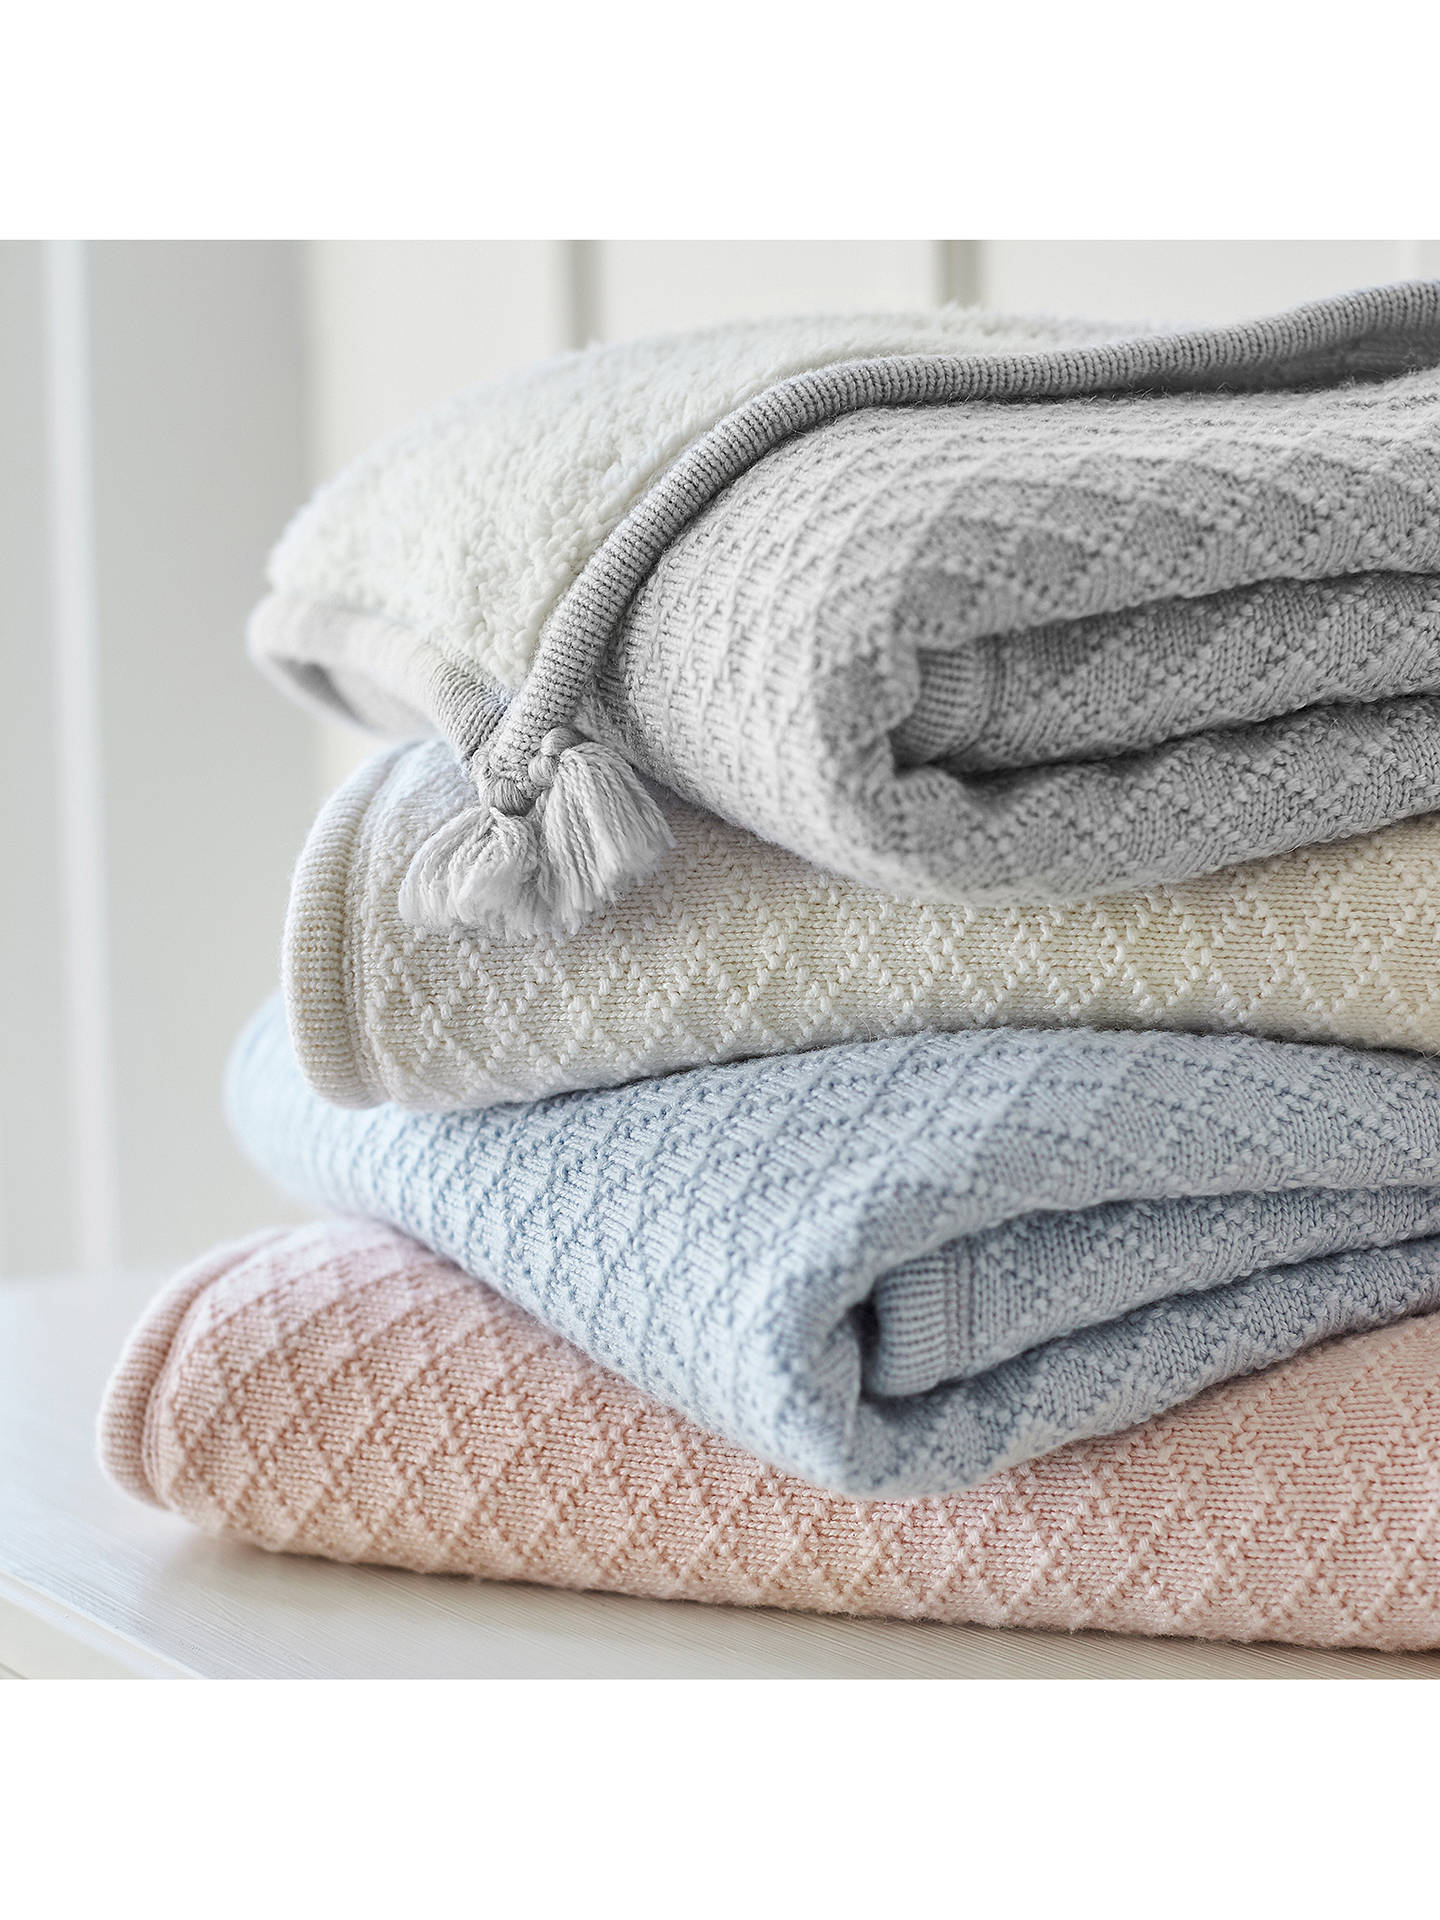 Buy Pottery Barn Kids Luxe Sherpa Baby Blanket, Grey Online at johnlewis.com